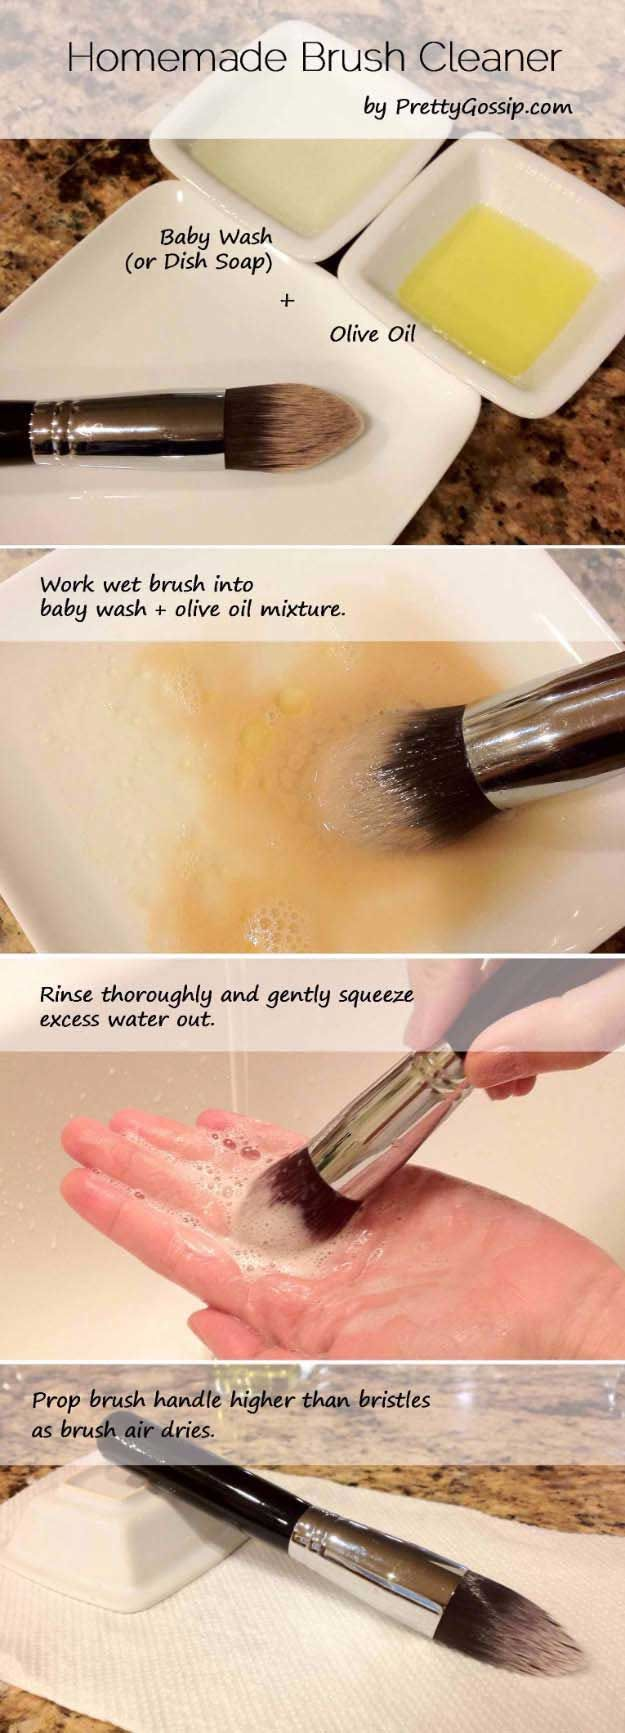 Cool Tips for Your Makeup Brushes - How to Clean Makeup Brushes at Home - Awesome Guides on How To Use Makeup Brushes - Easy Tips and Tutorials for Cleanses ...